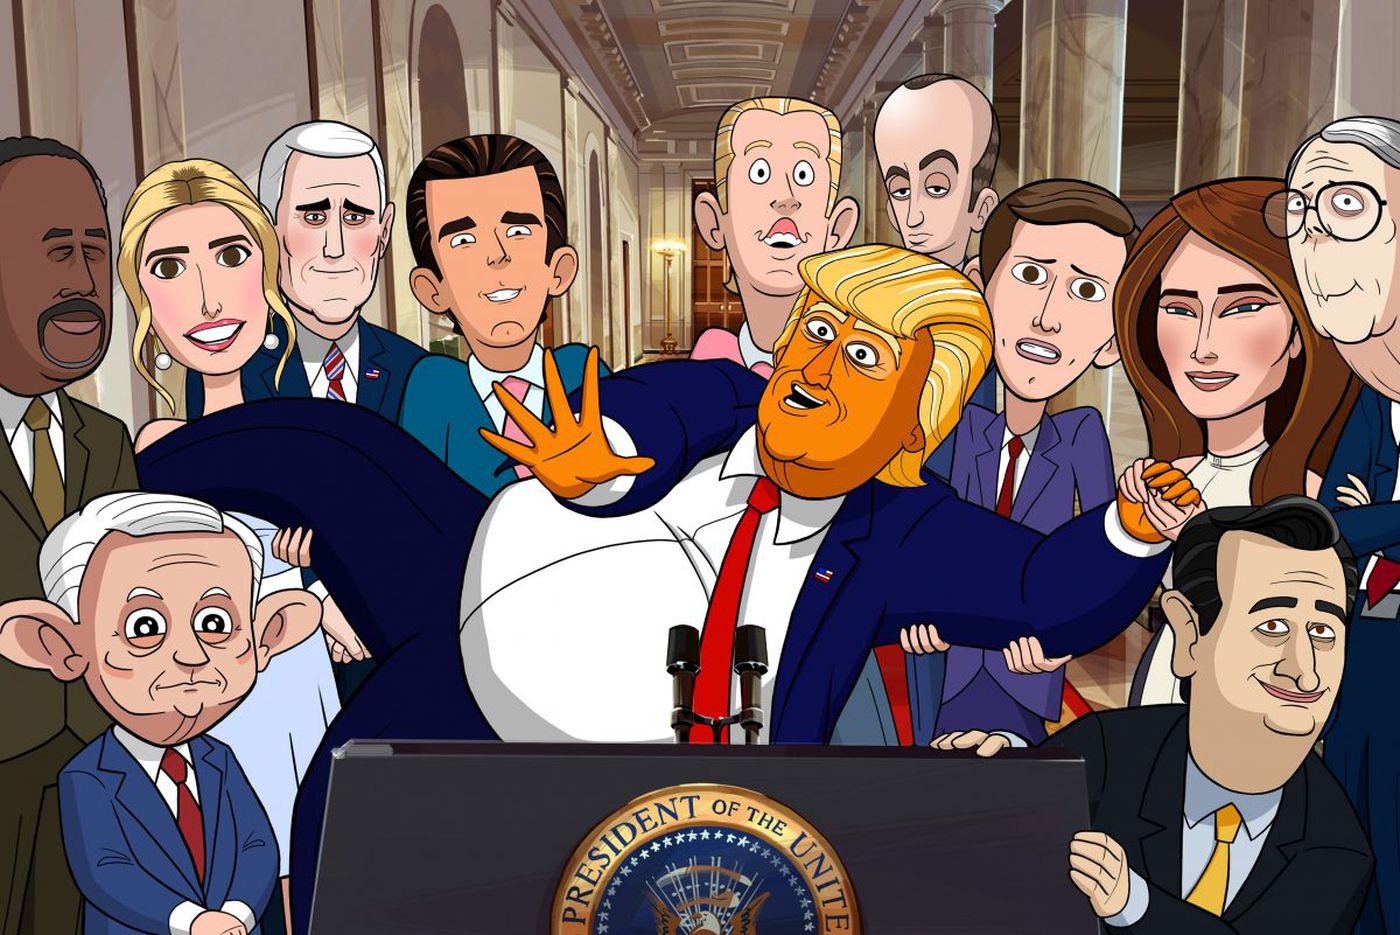 Philly's Jeff Bergman on finding voice(s) of Trump in 'Our Cartoon President': 'I don't judge'